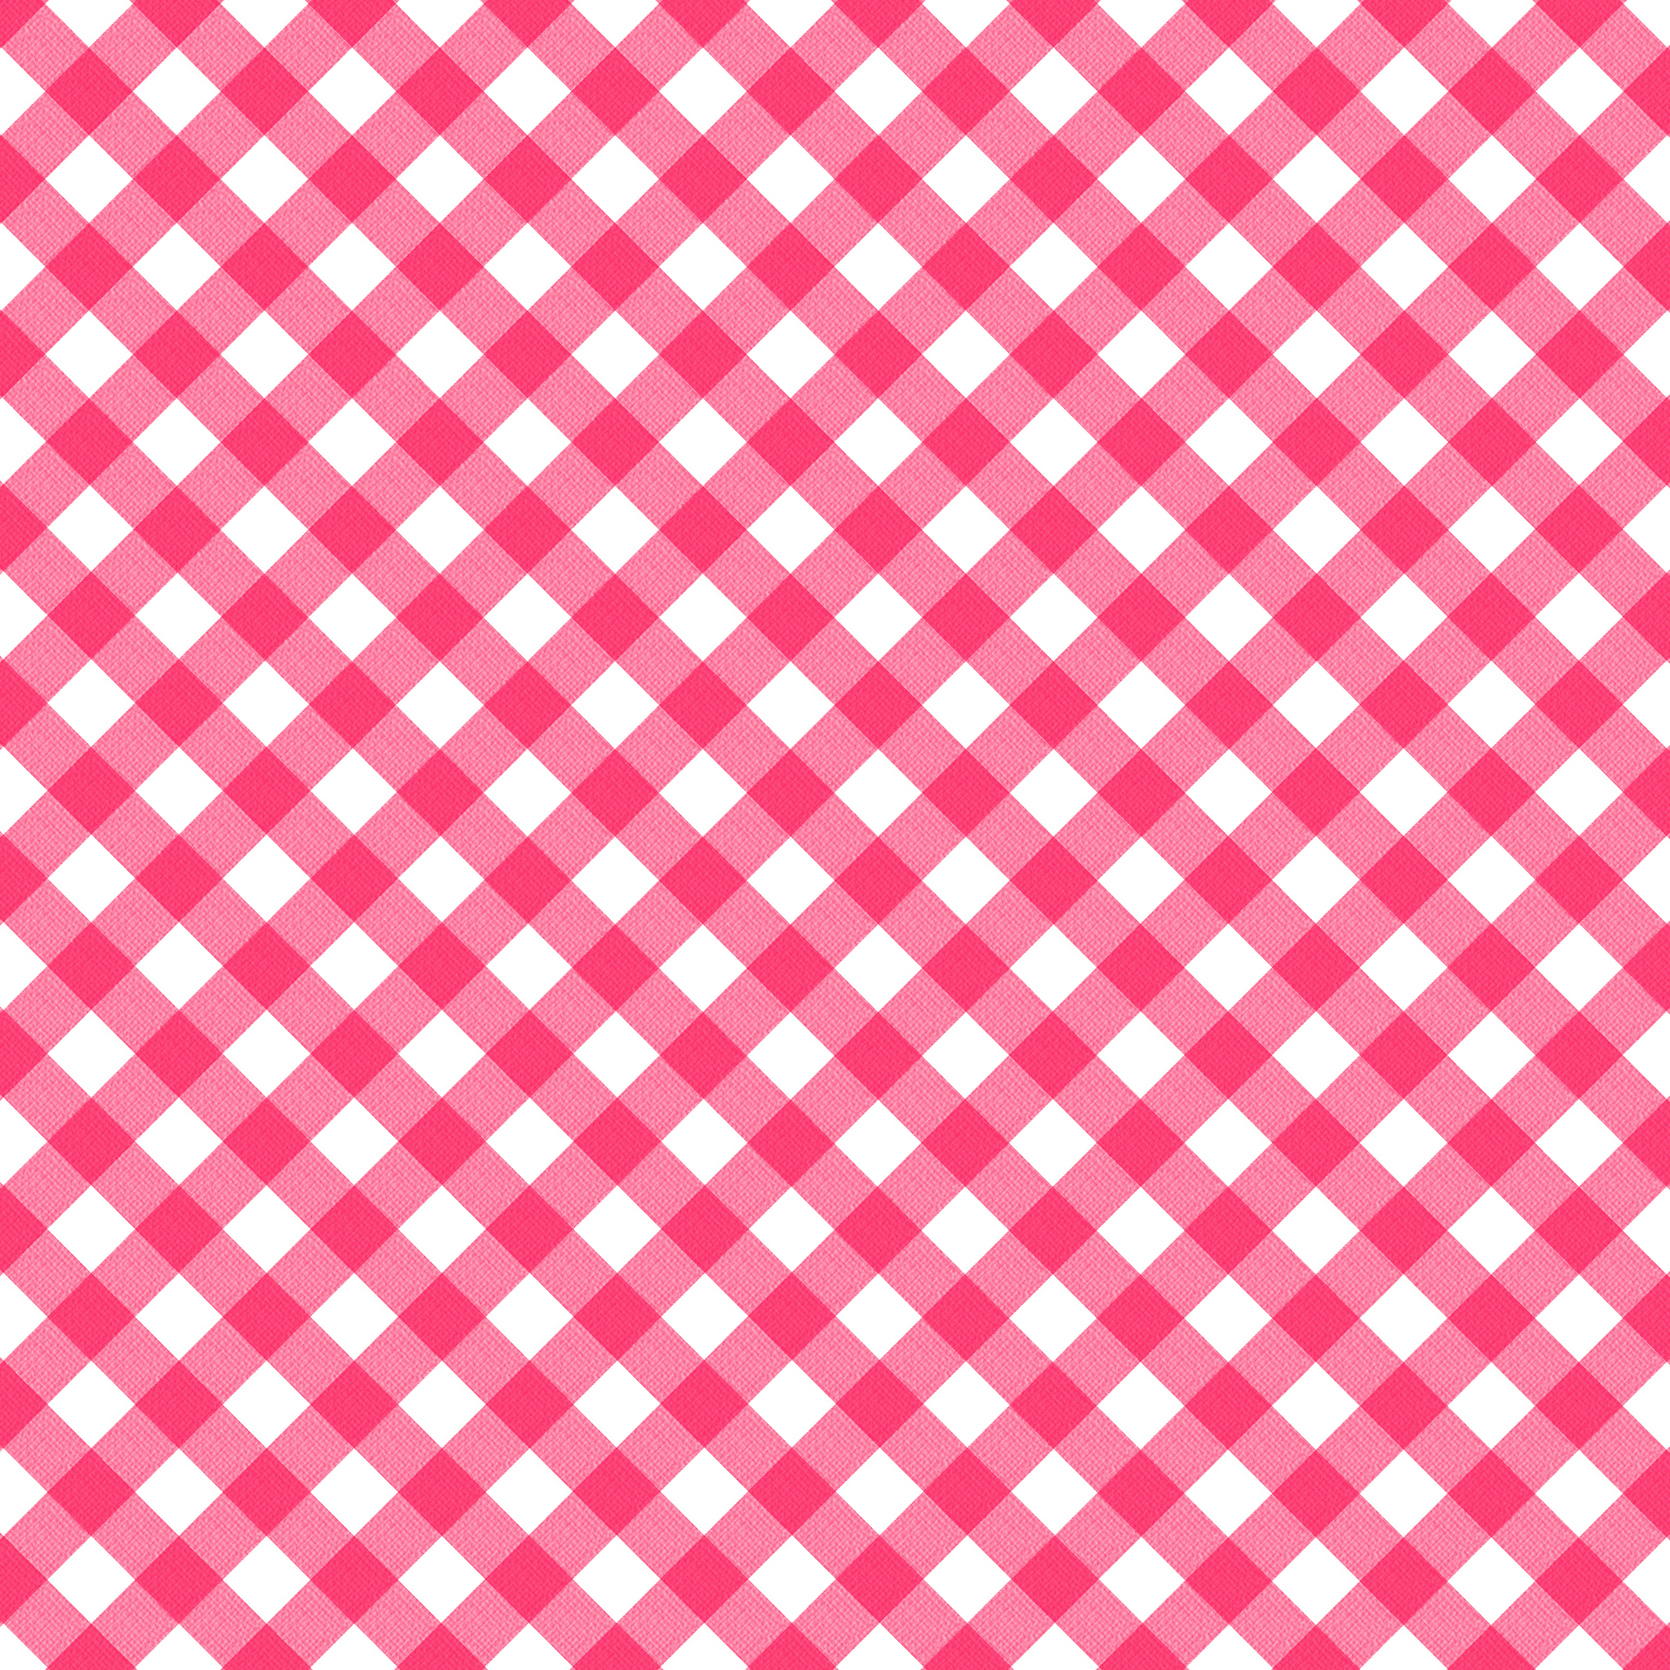 Pink Tablecloth Seamless Fabric Texture